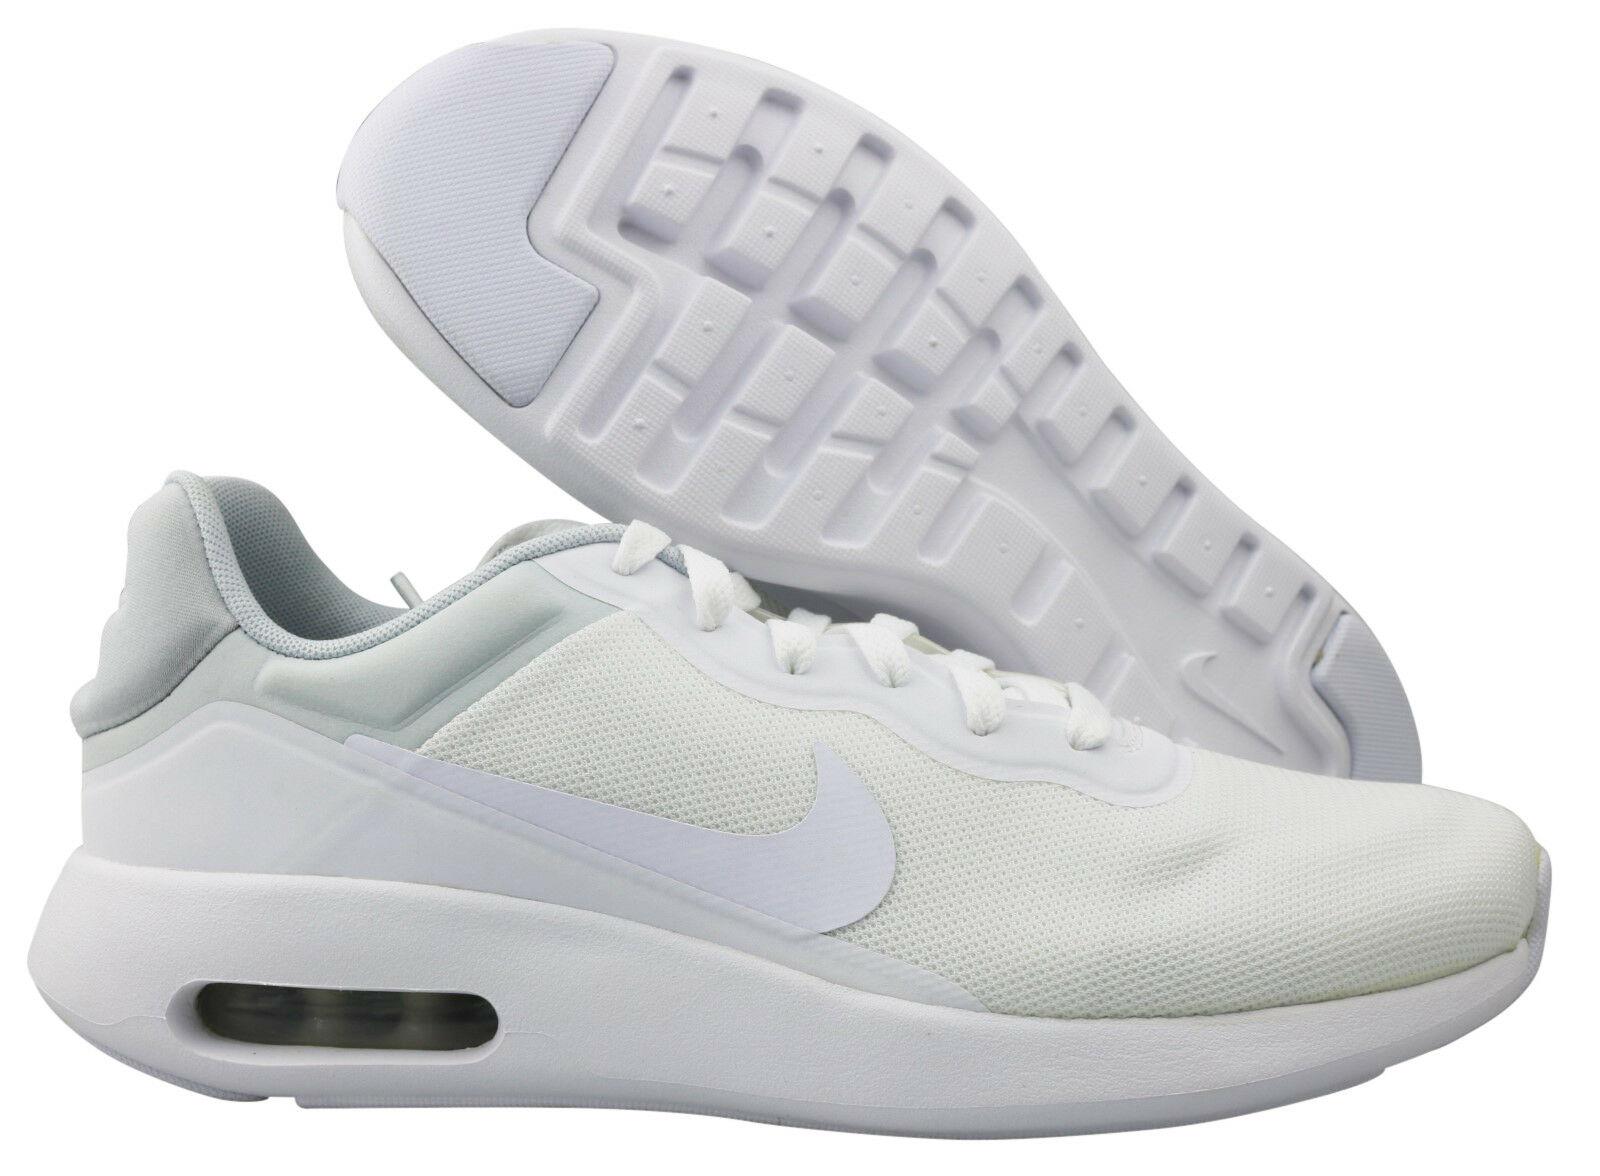 in stock 1a84a de731 ... Nike Air Max Modern Essential Hommes Sneaker Chaussures Taille 40,5  40,5 40 ...